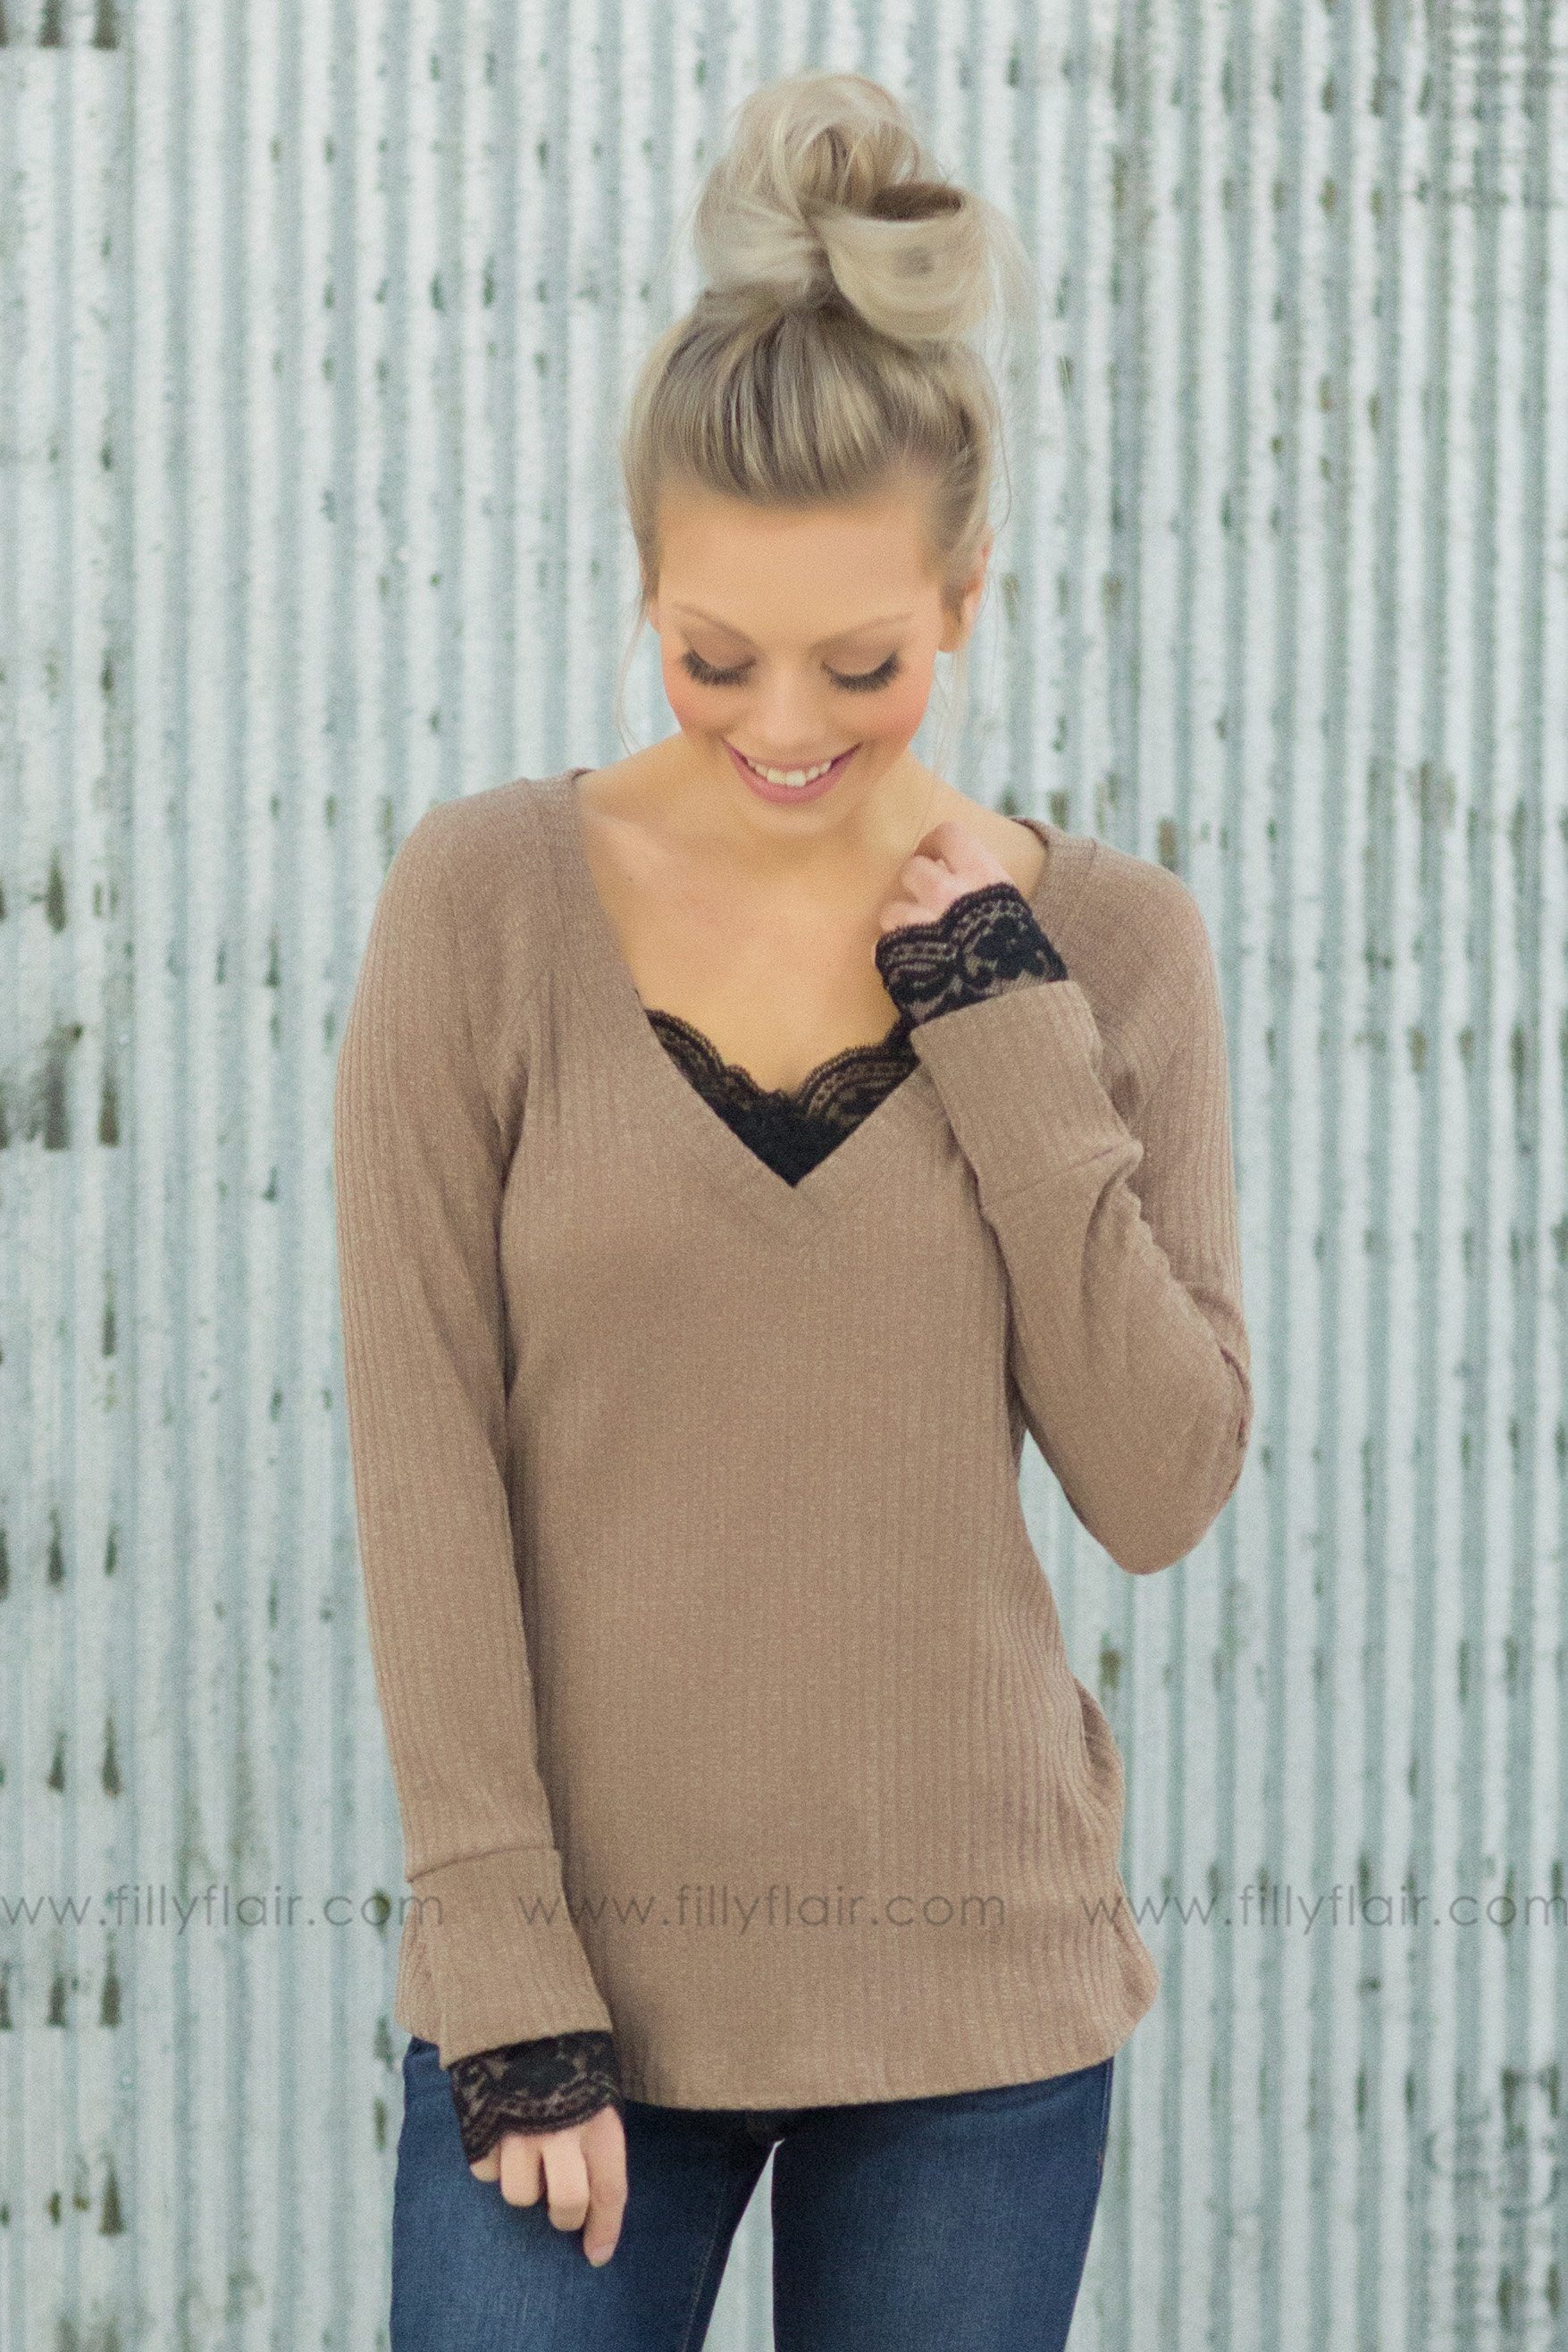 When You're Gone V-Neck Lace Detail Top In Mocha - Filly Flair